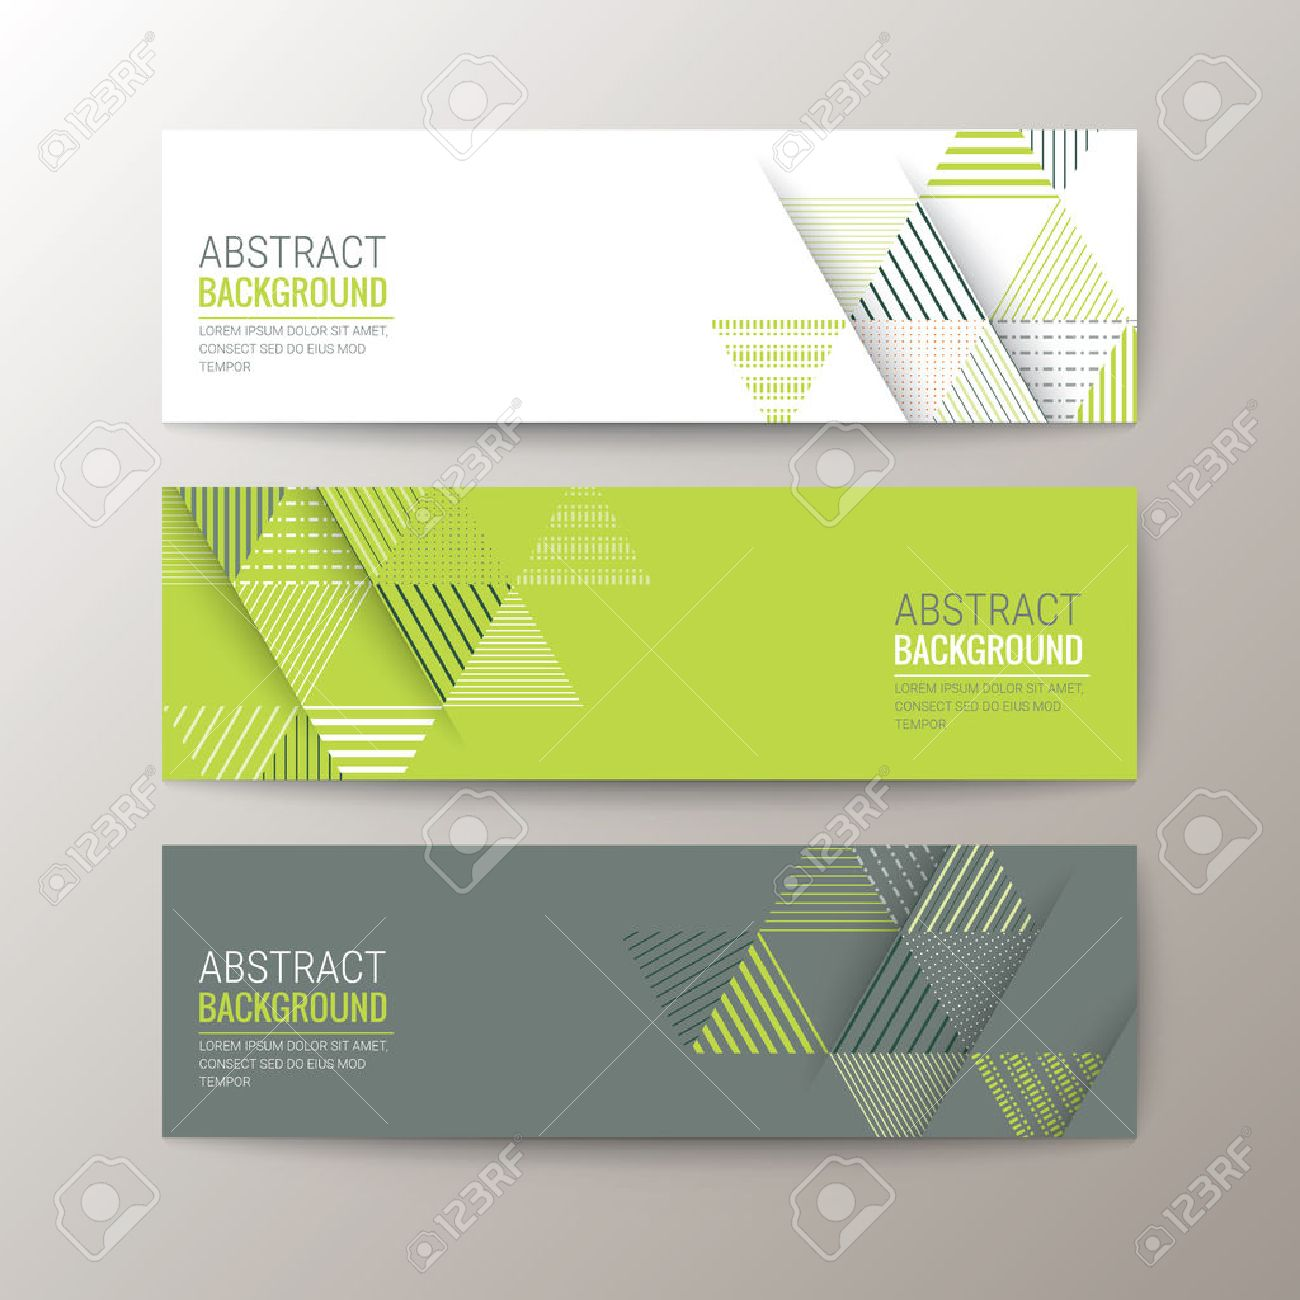 Set of modern design banners template with abstract triangle pattern background - 46809545